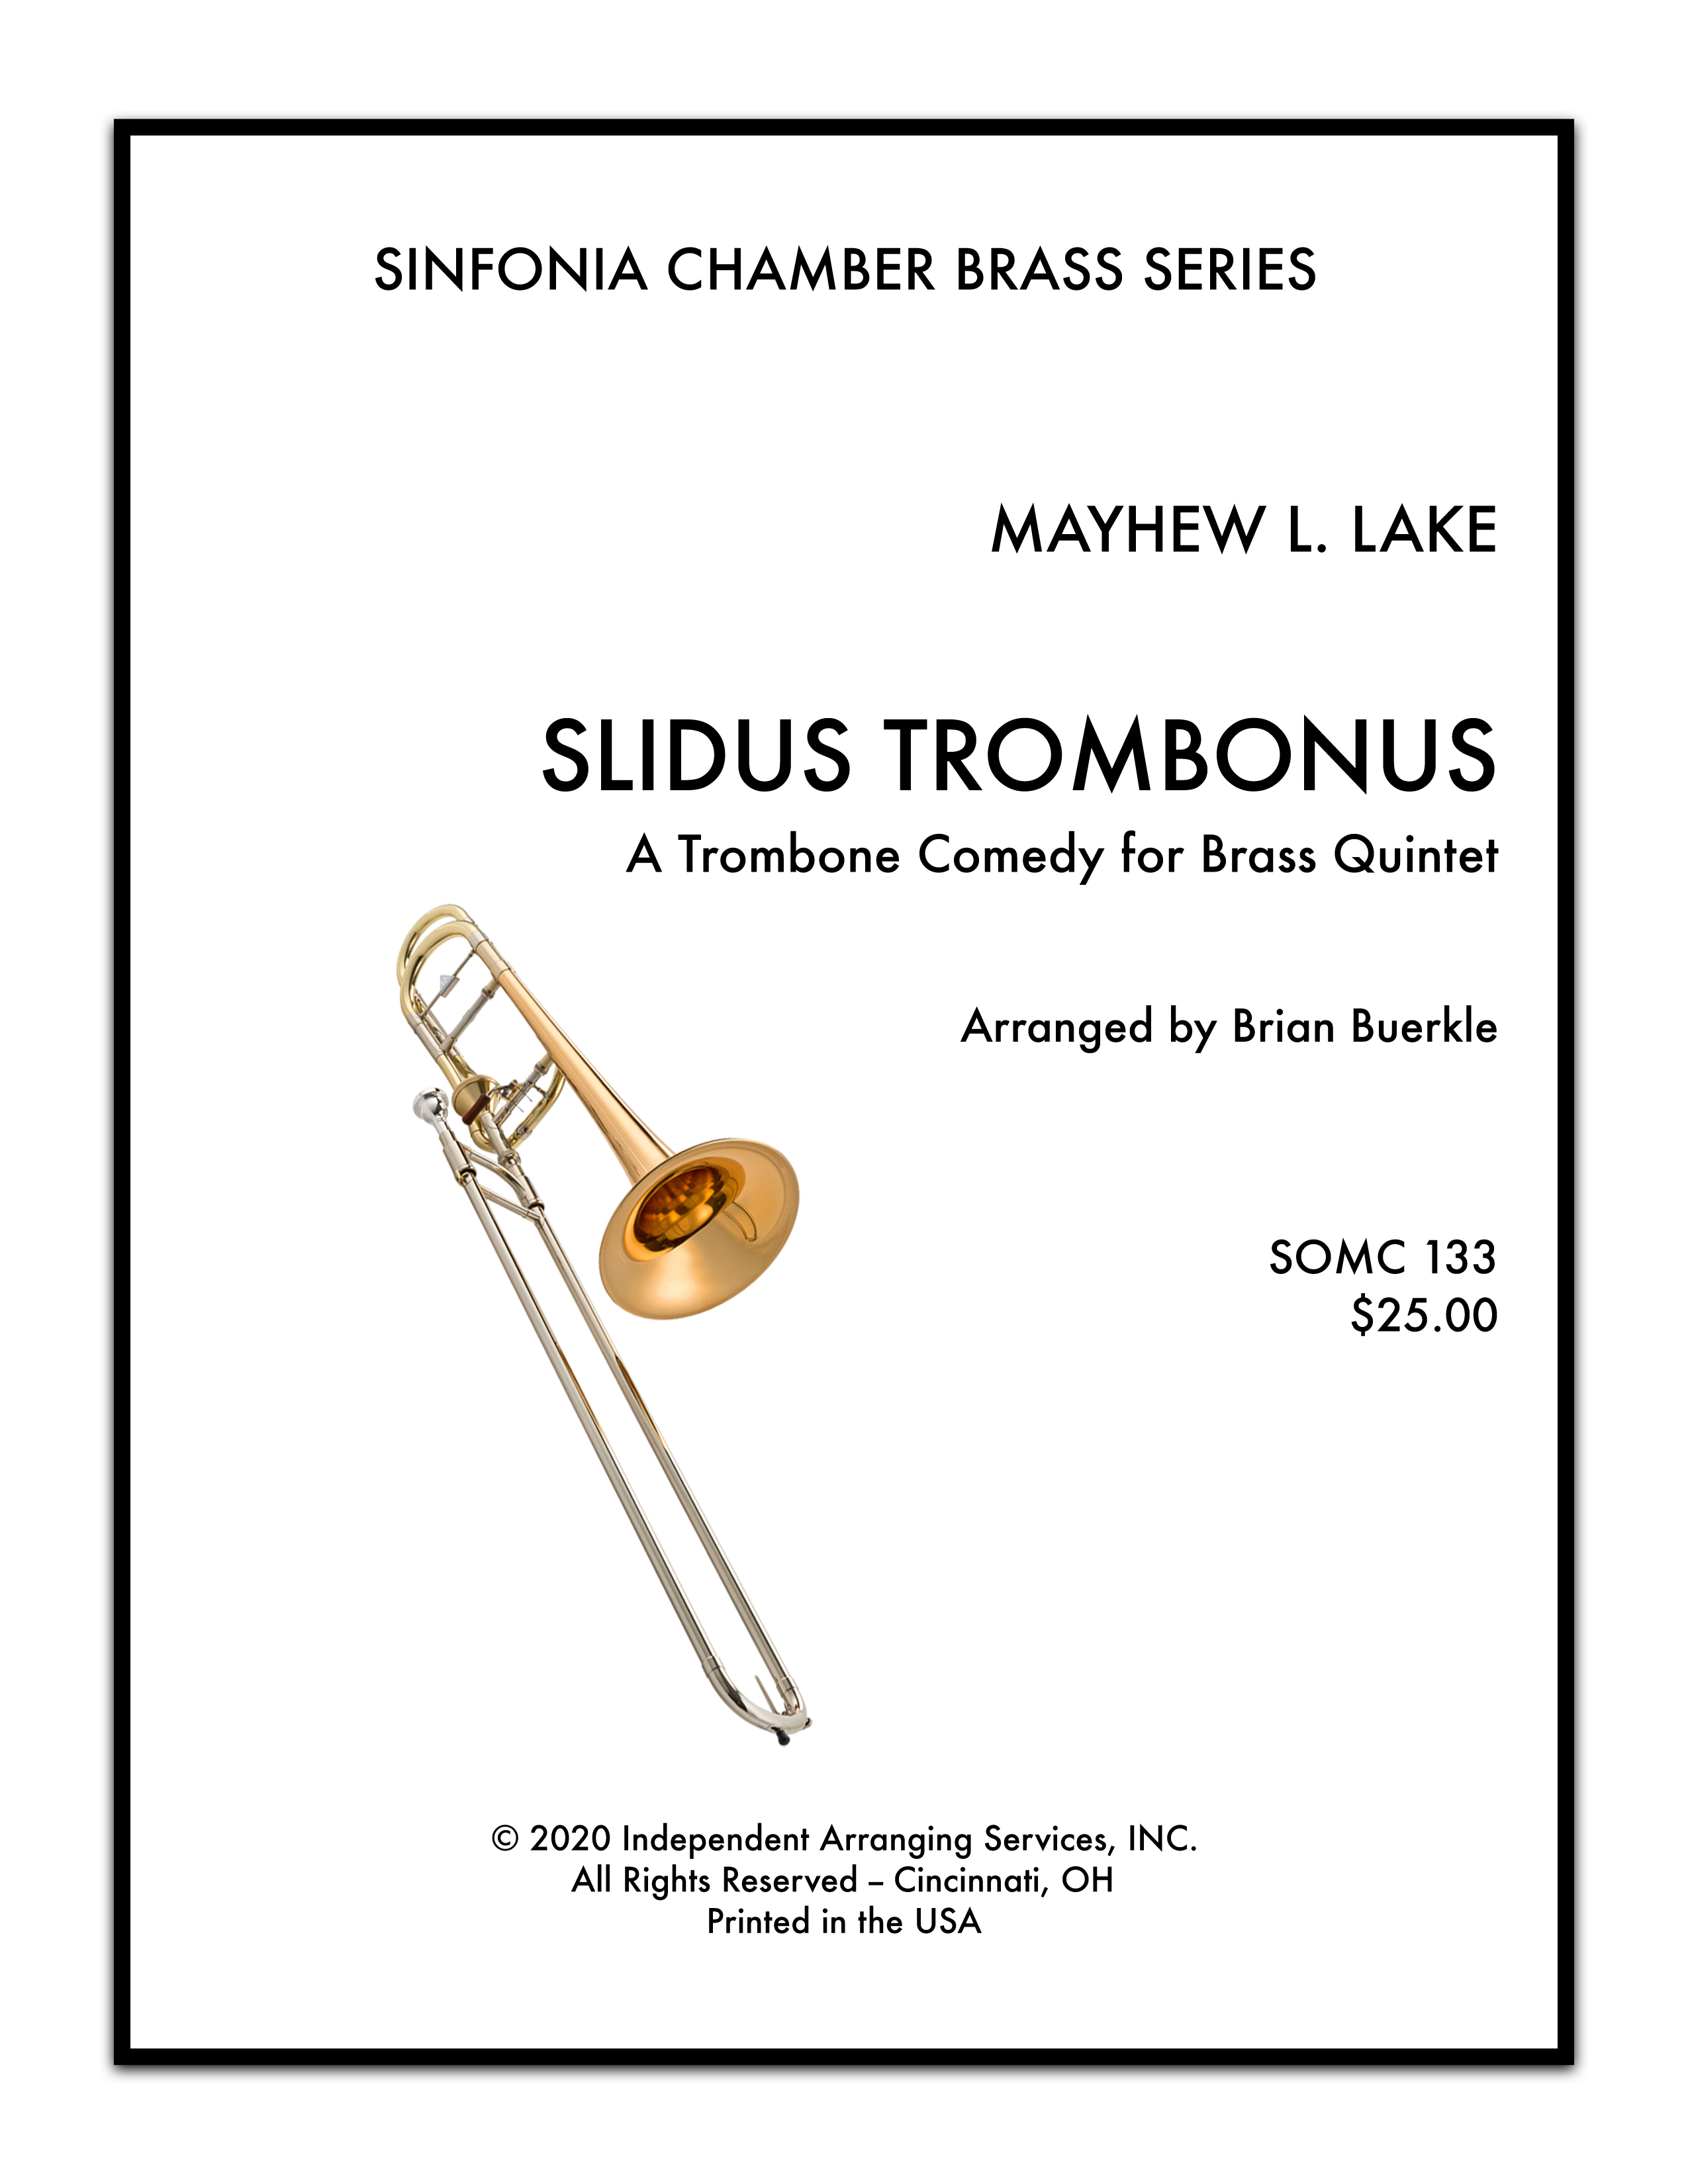 Lake (arr. Buerkle) - Slidus Trombonus (SOMusic)